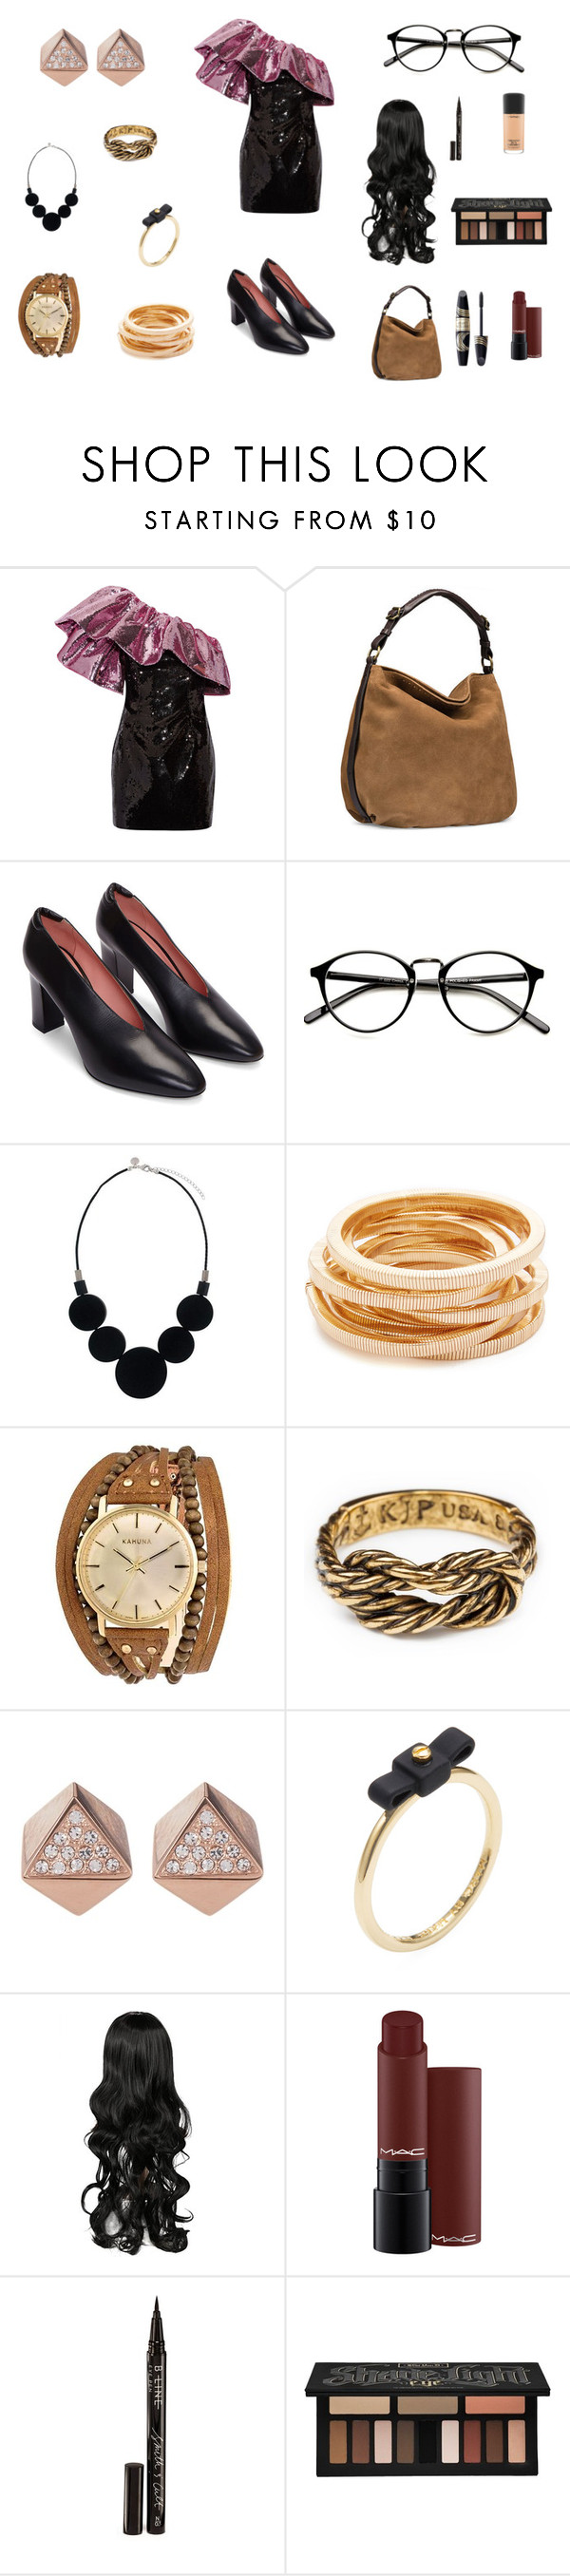 """1952 Prom Outfit"" by marizacampbell on Polyvore featuring Yves Saint Laurent, UGG, Acne Studios, Kenneth Jay Lane, Kahuna, FOSSIL, Marc by Marc Jacobs, Smith & Cult, Max Factor and Kat Von D"